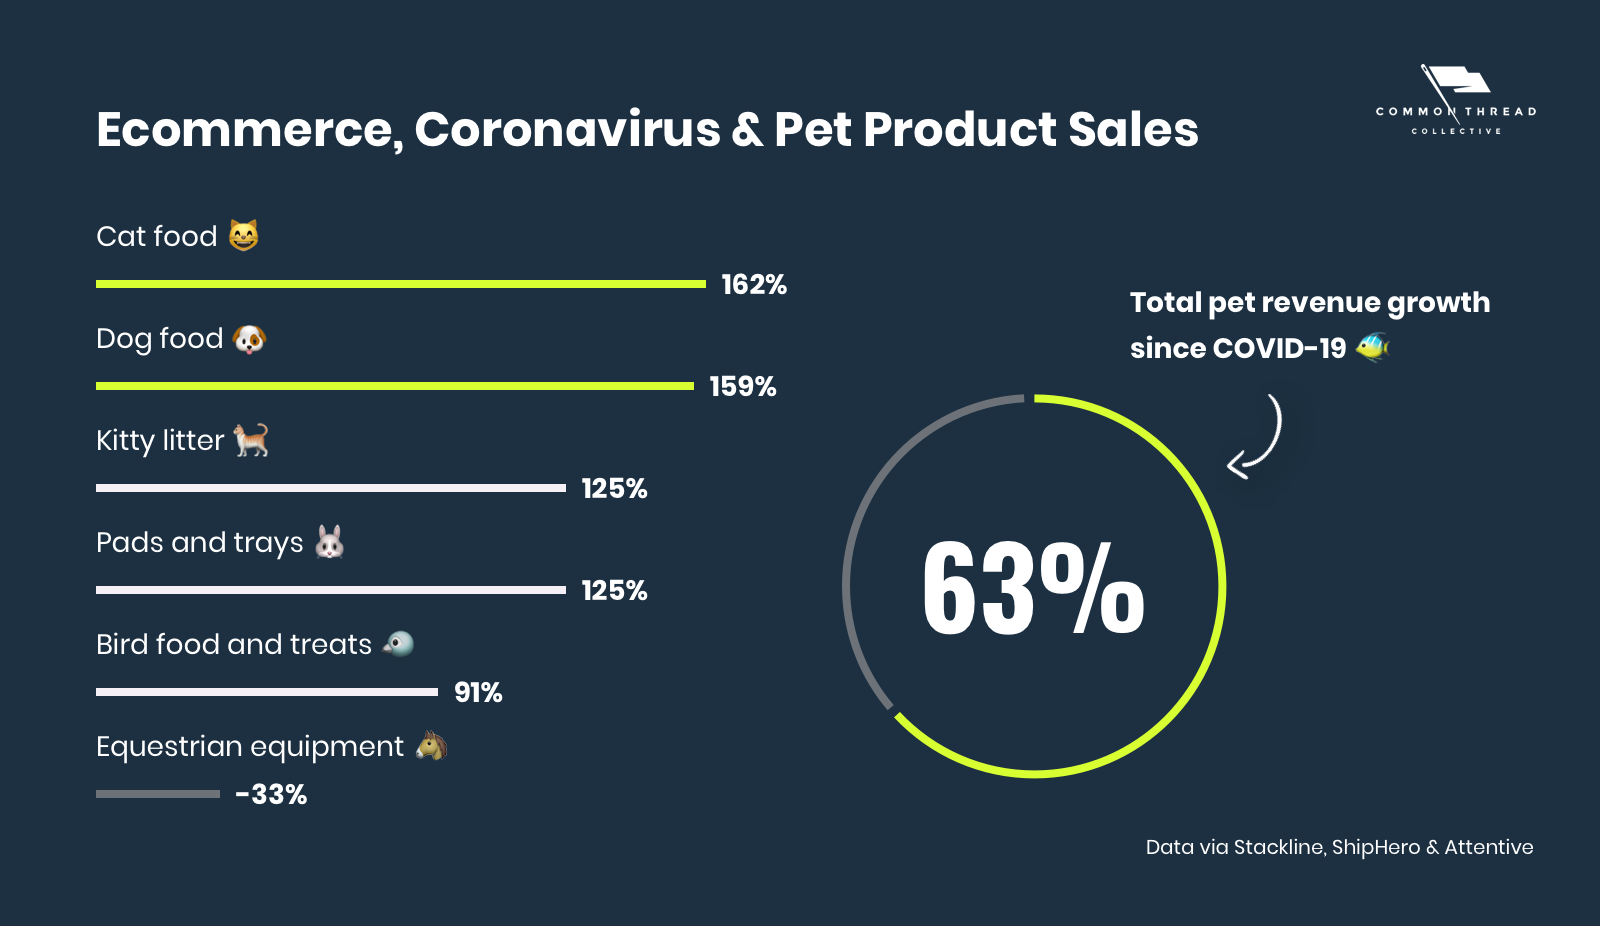 Ecommerce, Pet Product Sales & Coronavirus